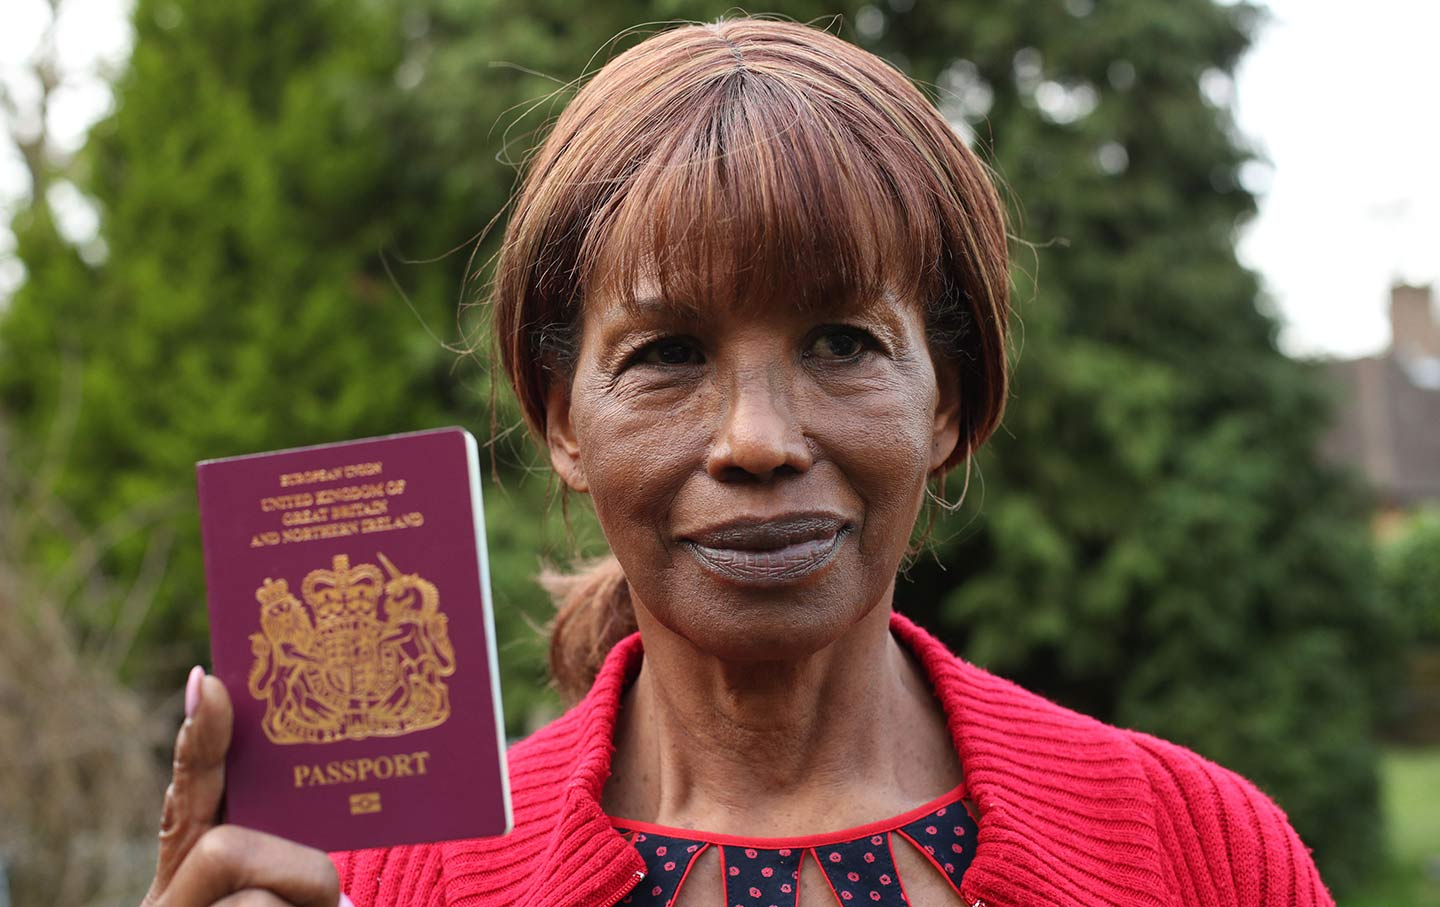 Ruth Williams, 75, who came to the UK as part of the Windrush generation, with her British passport, April 17, 2018.  (AP Images)